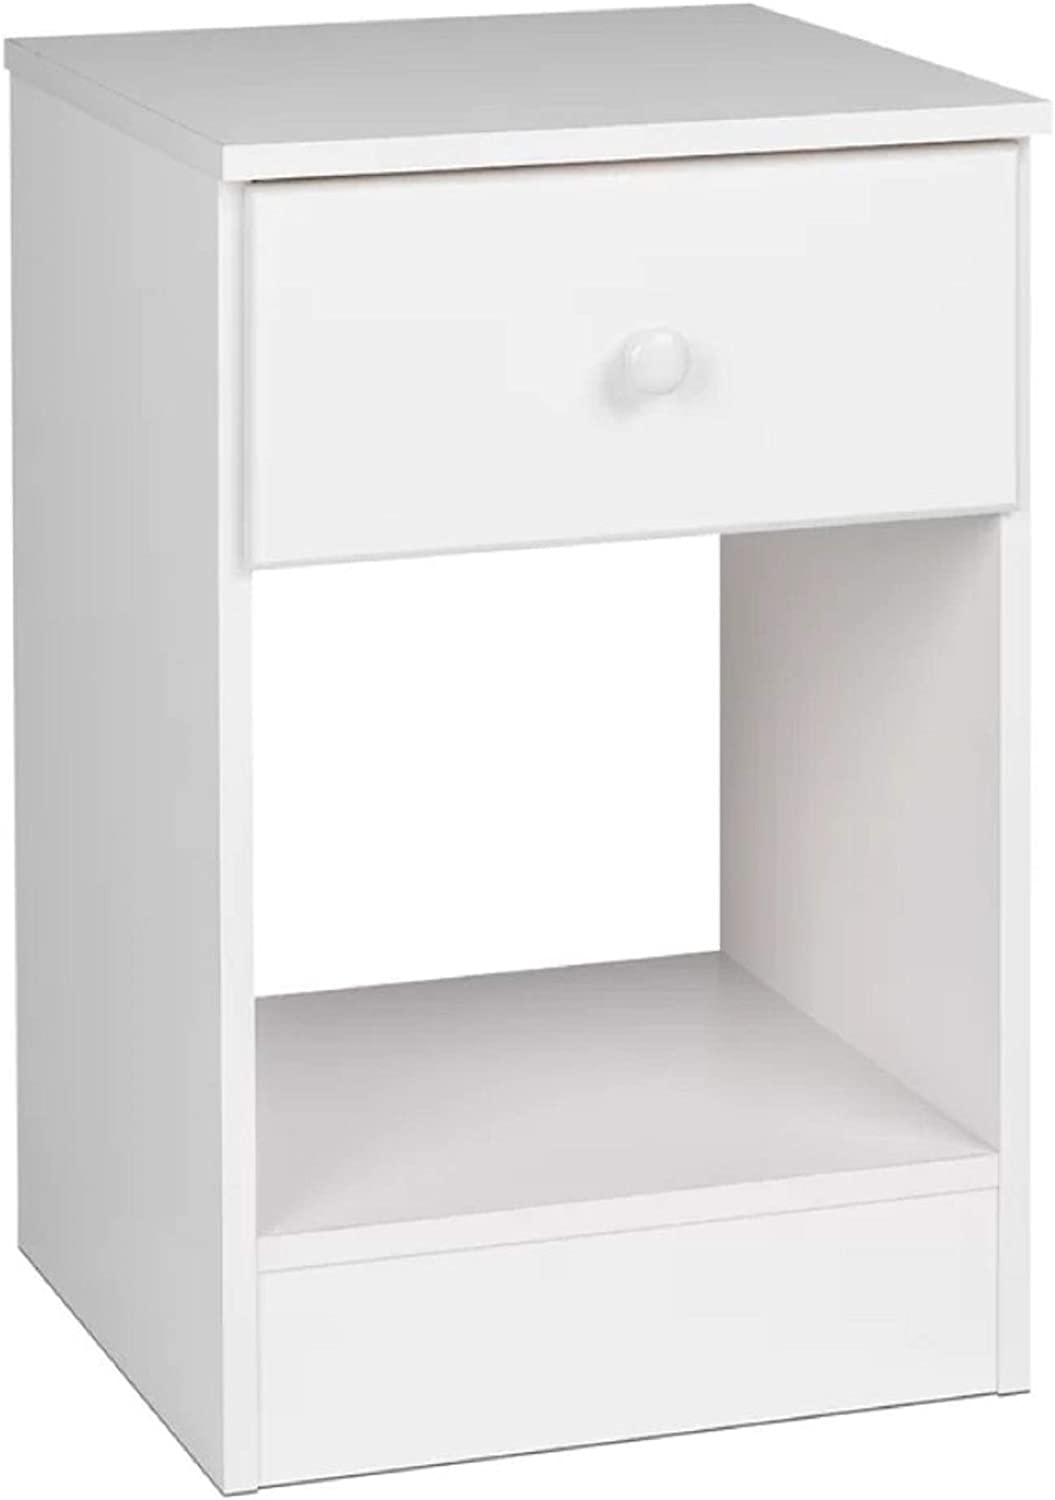 Nightstand. Smooth Running Drawer Glides, Safety Stops Bailey 1 Drawer Nightstand with Shelf, Dimension 12  H x 14.5  W x 14.5  D (White)